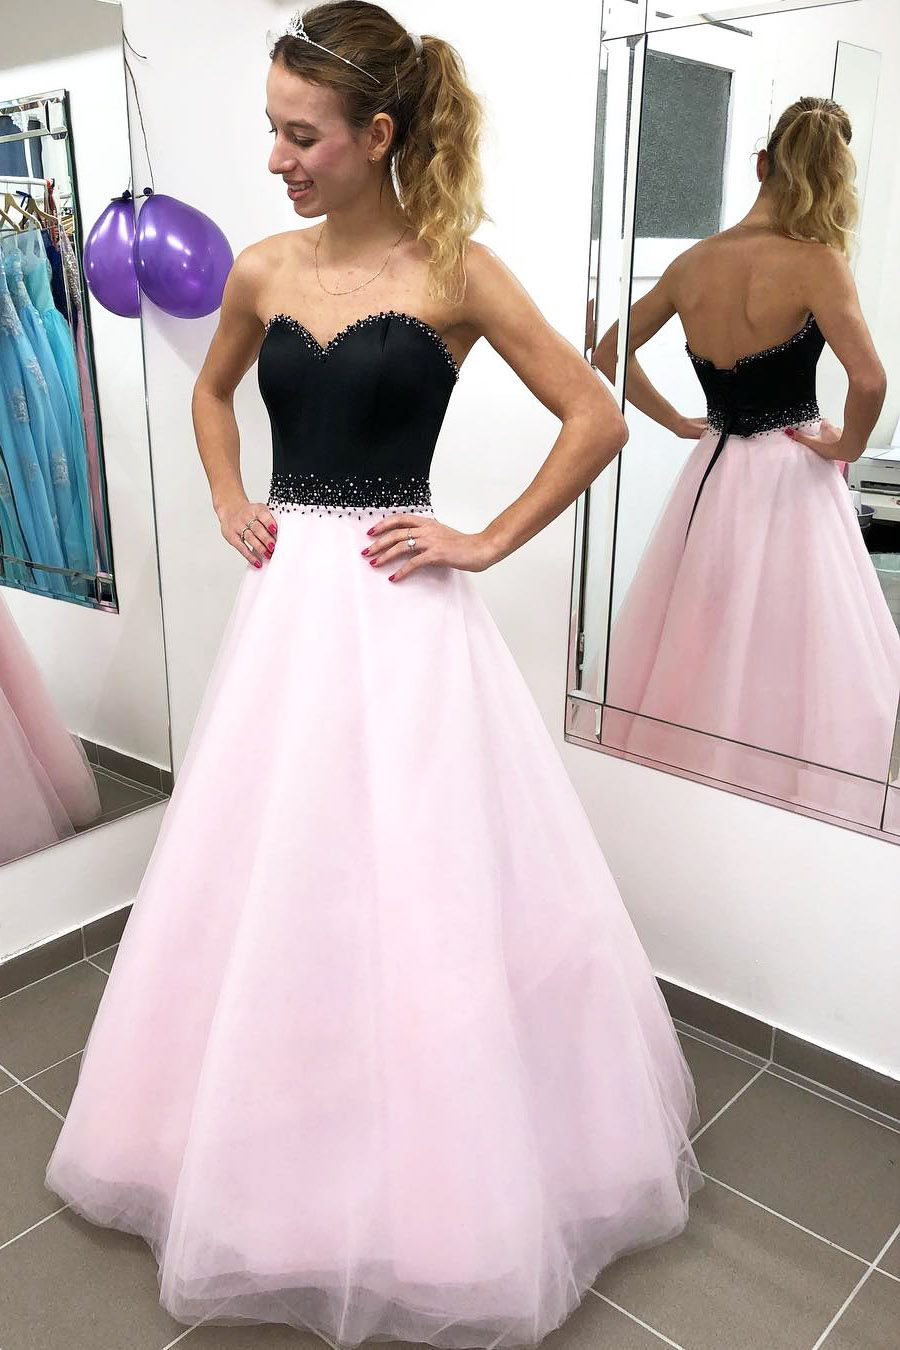 Sweetheart Lace Up Long Pink Prom Dress Homecoming Dresses Long Formal Evening Dresses Long Graduation Party Dresses [ 1350 x 900 Pixel ]